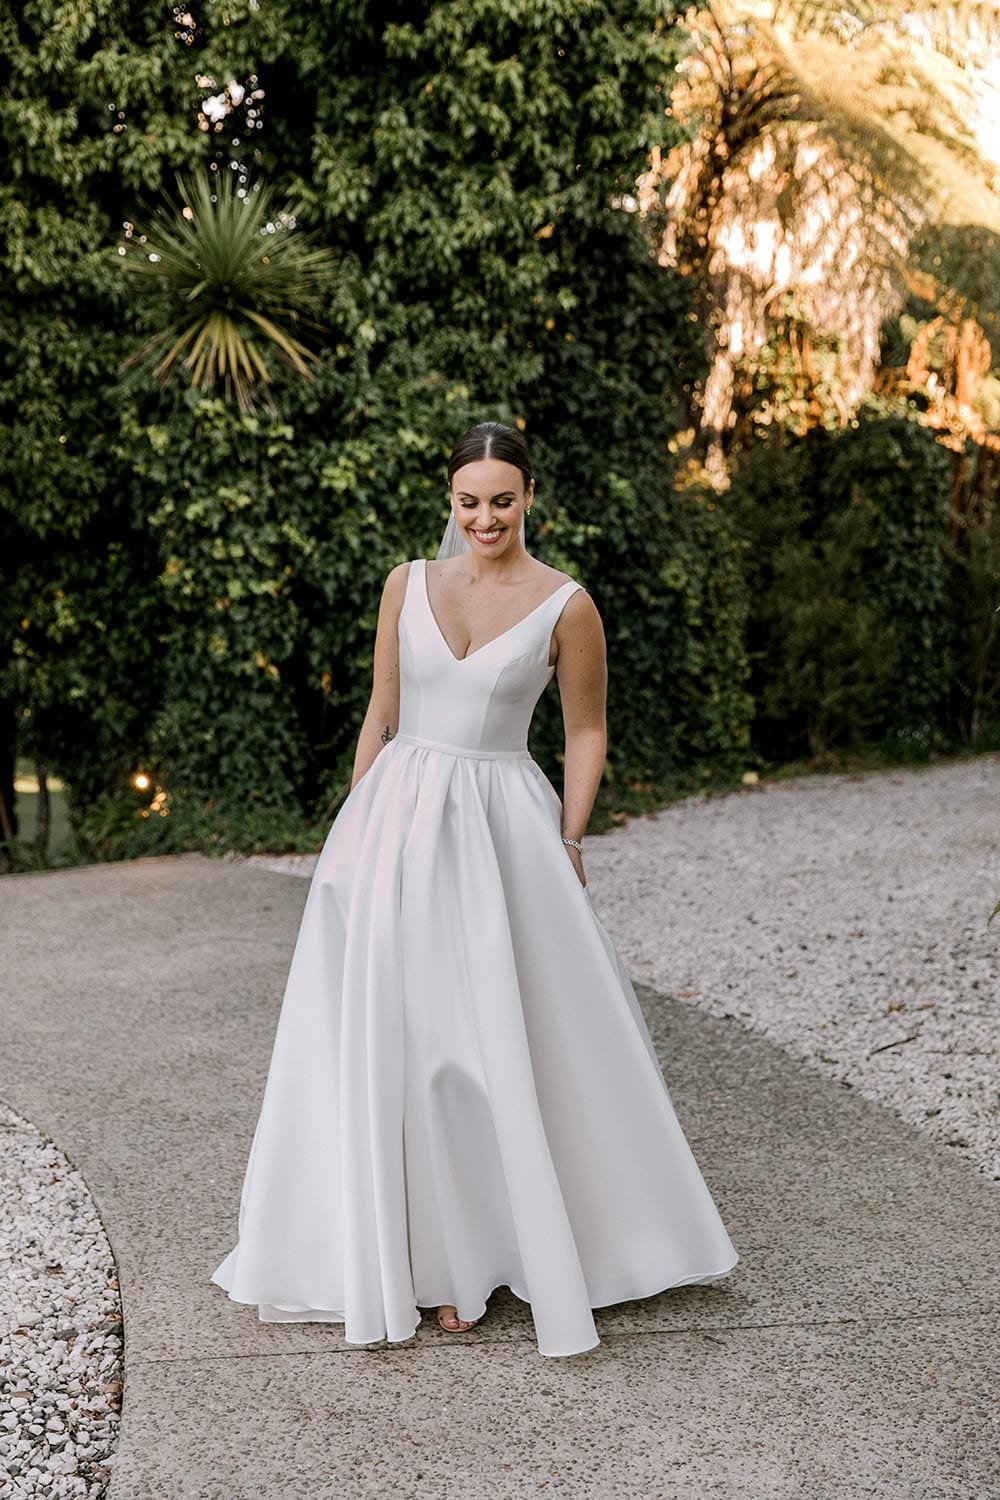 Madison Wedding Dress from Vinka Design. Classic Mikado satin wedding dress. Structured bodice with deep V-neckline & low back. Side pockets in the skirt give fun & versatility, with a sweeping train. Full length portrait with hands in pockets. Photographed outdoors.